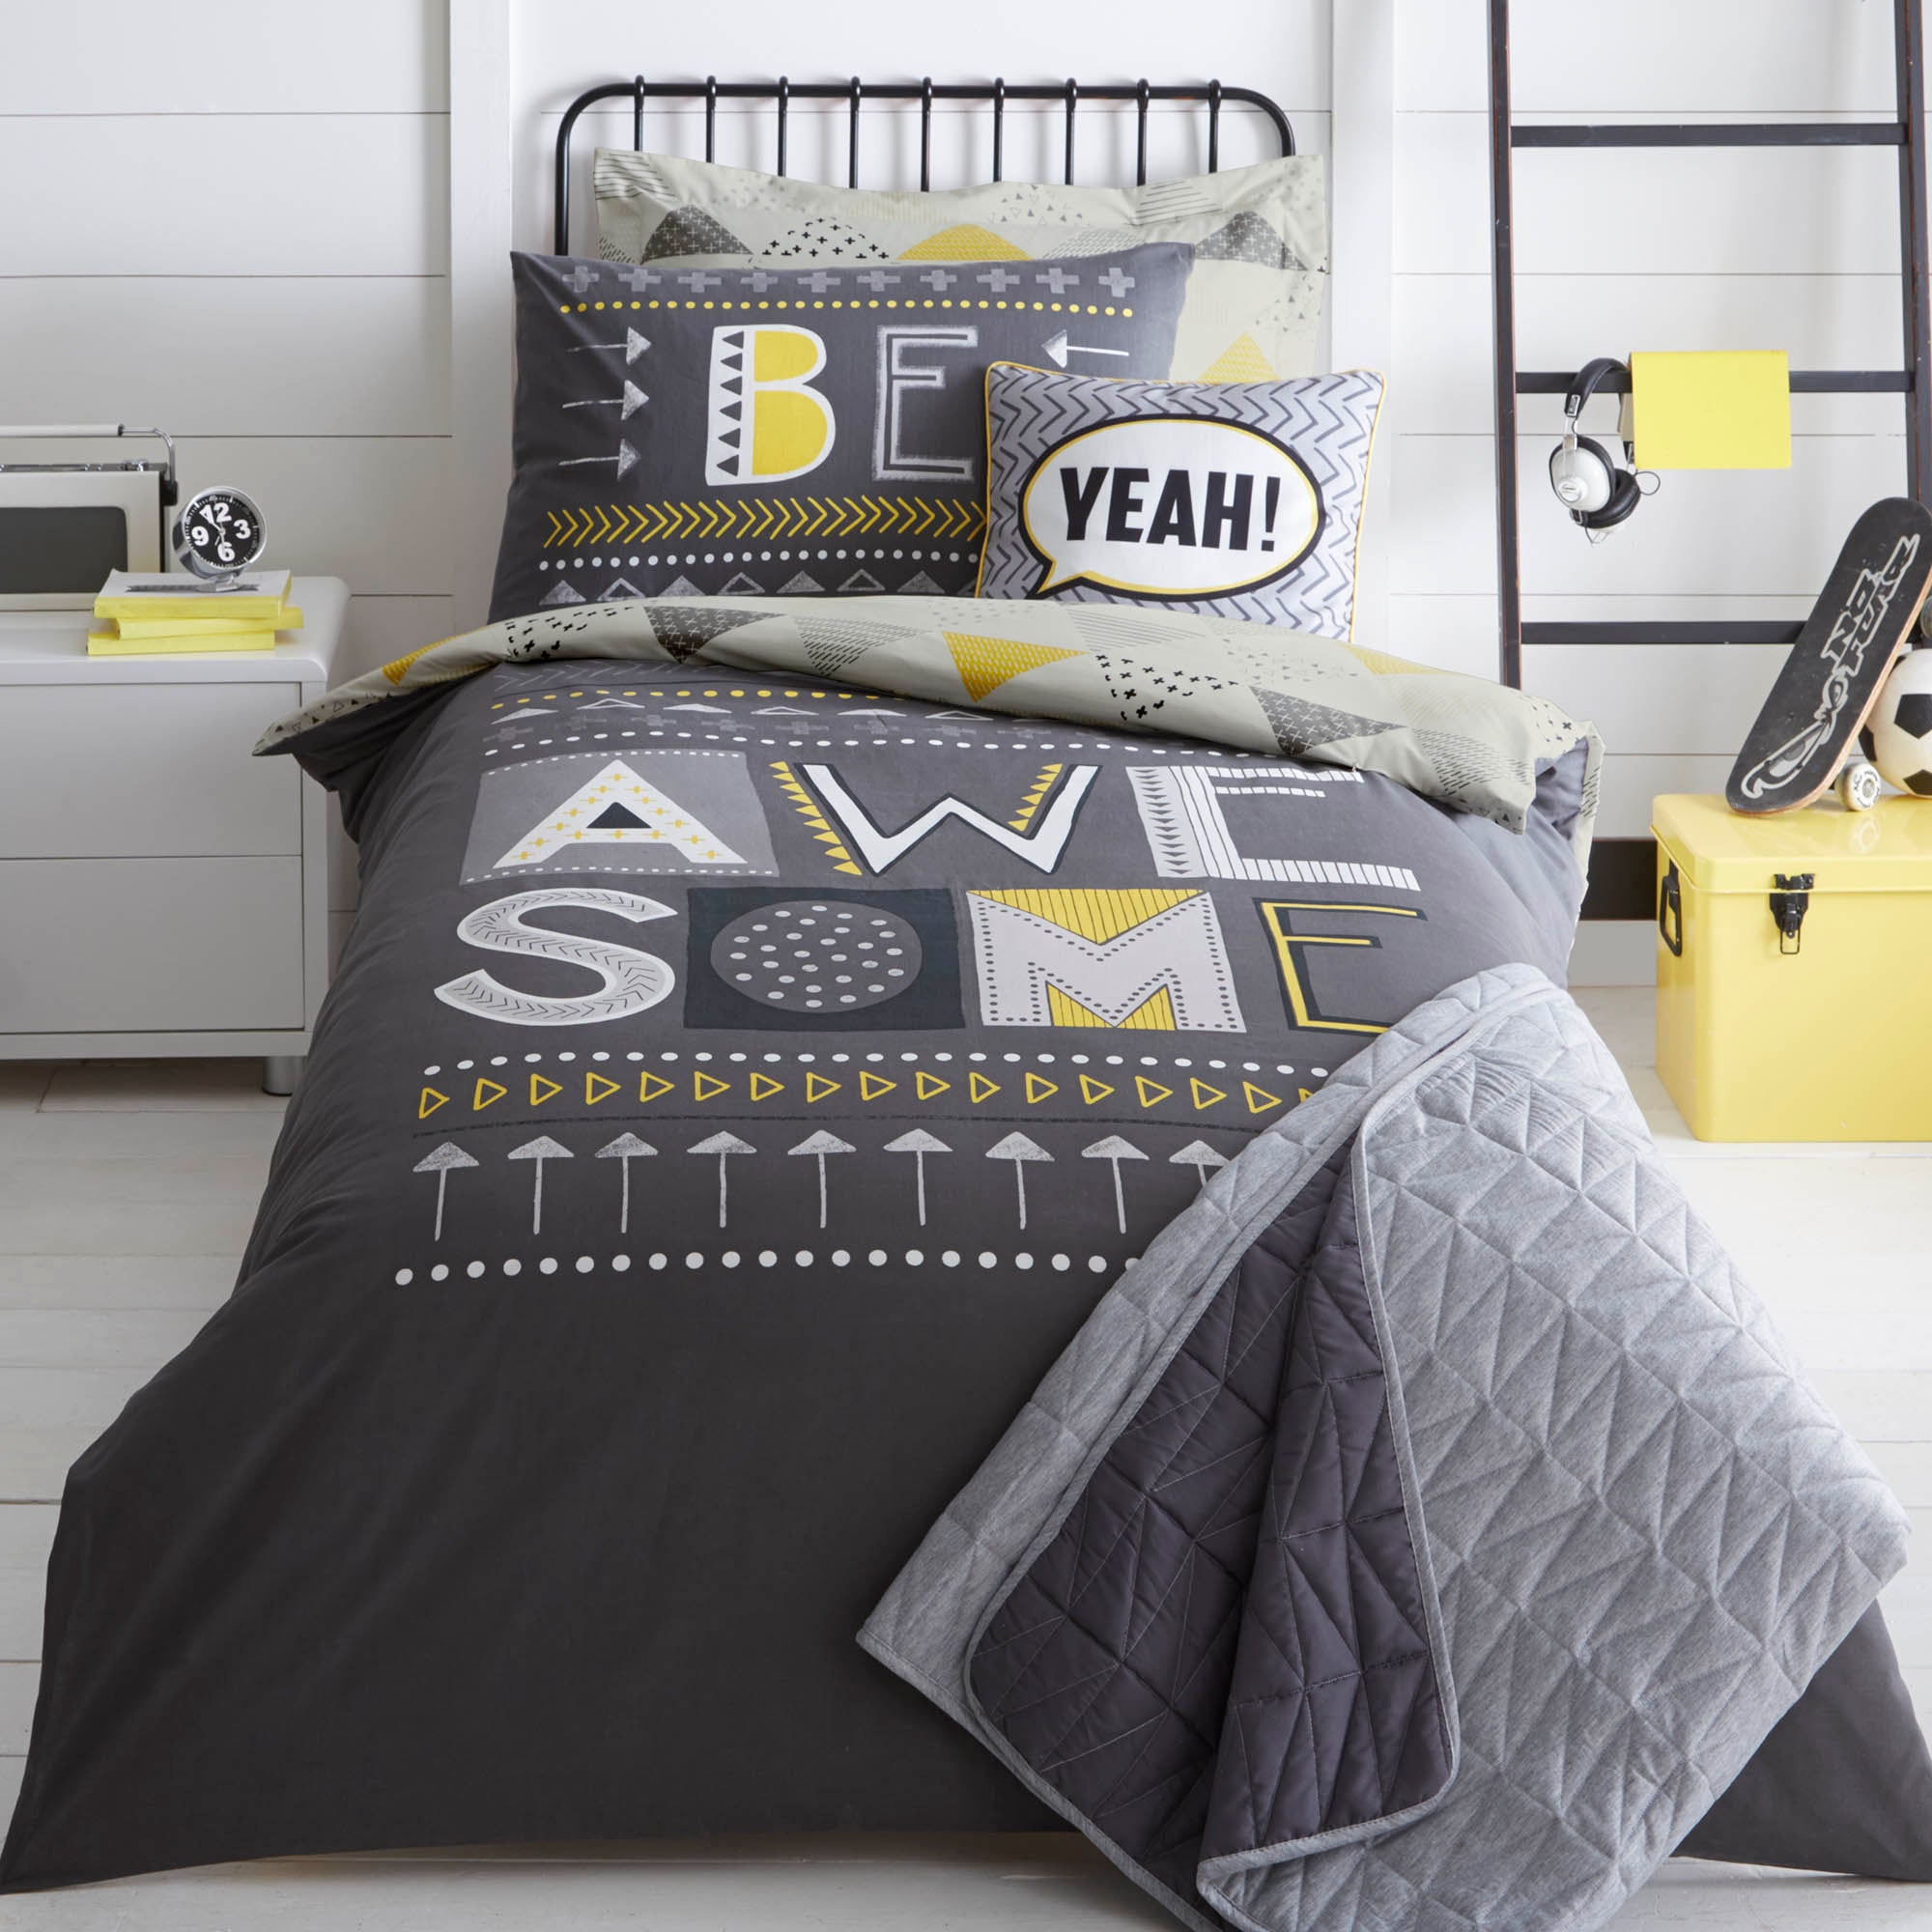 sets king cute desk size unique bed bedding with kids bunk cotton coolest for sheets comforter awesome loft bedroom and cool girls slide beds stairs